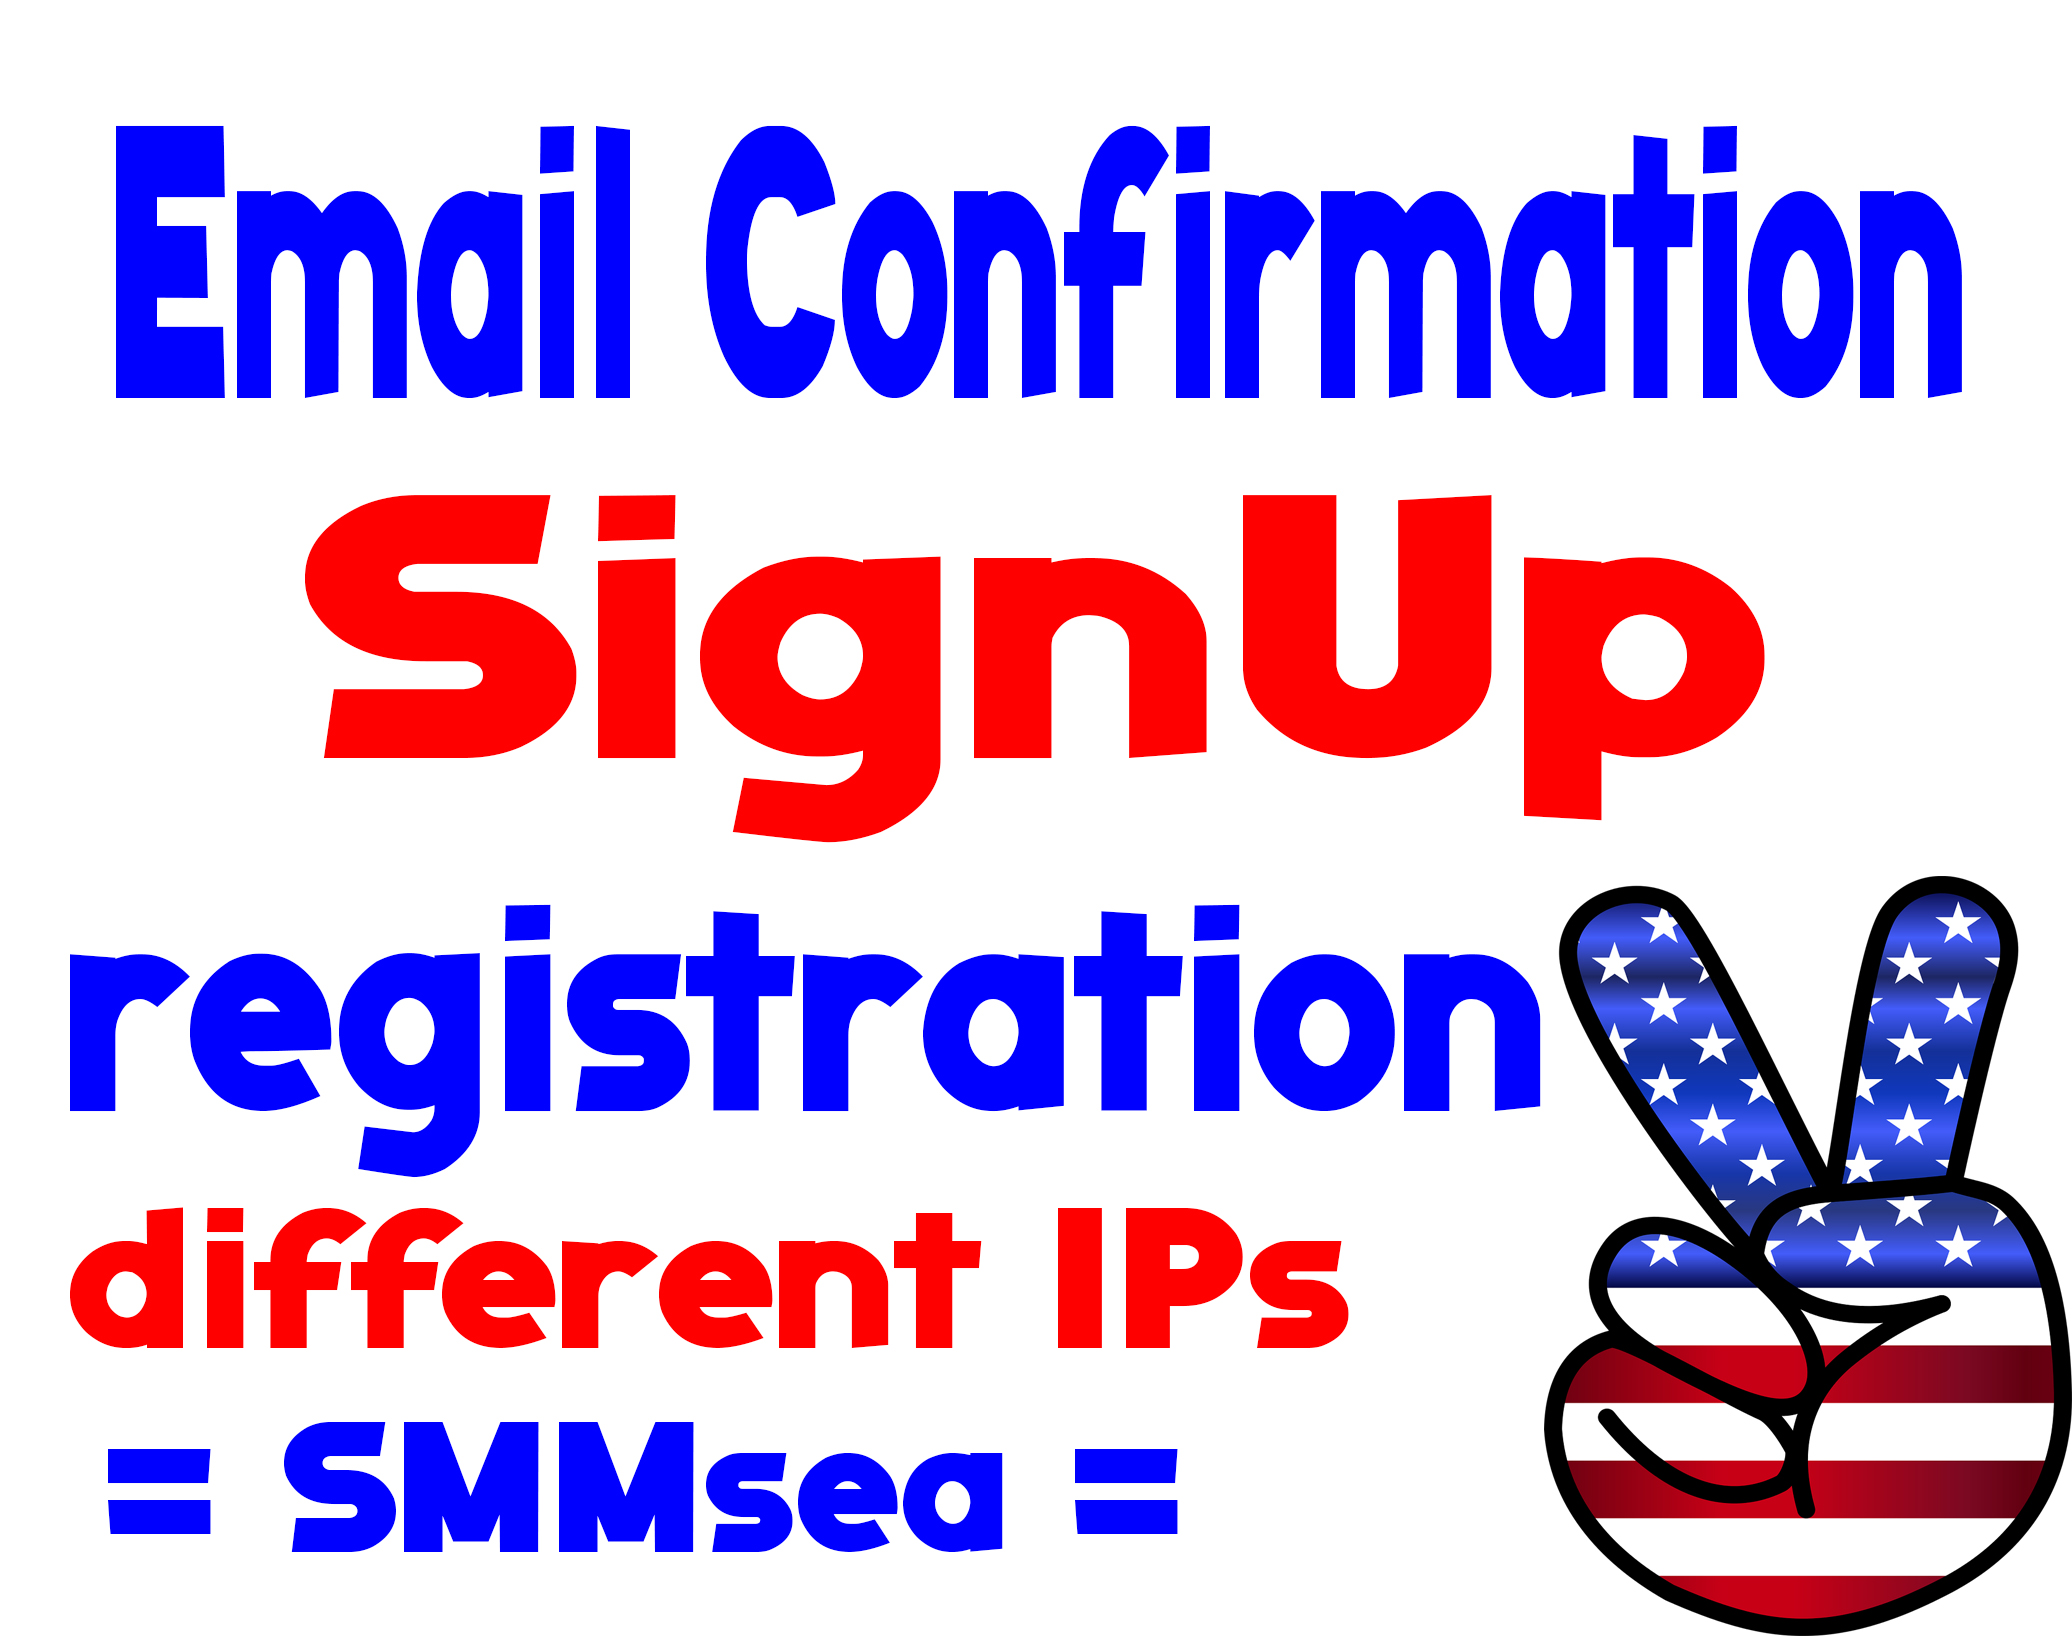 Give 100+ Registration, Signup or E-mail Confirmation Votes, Different IPs